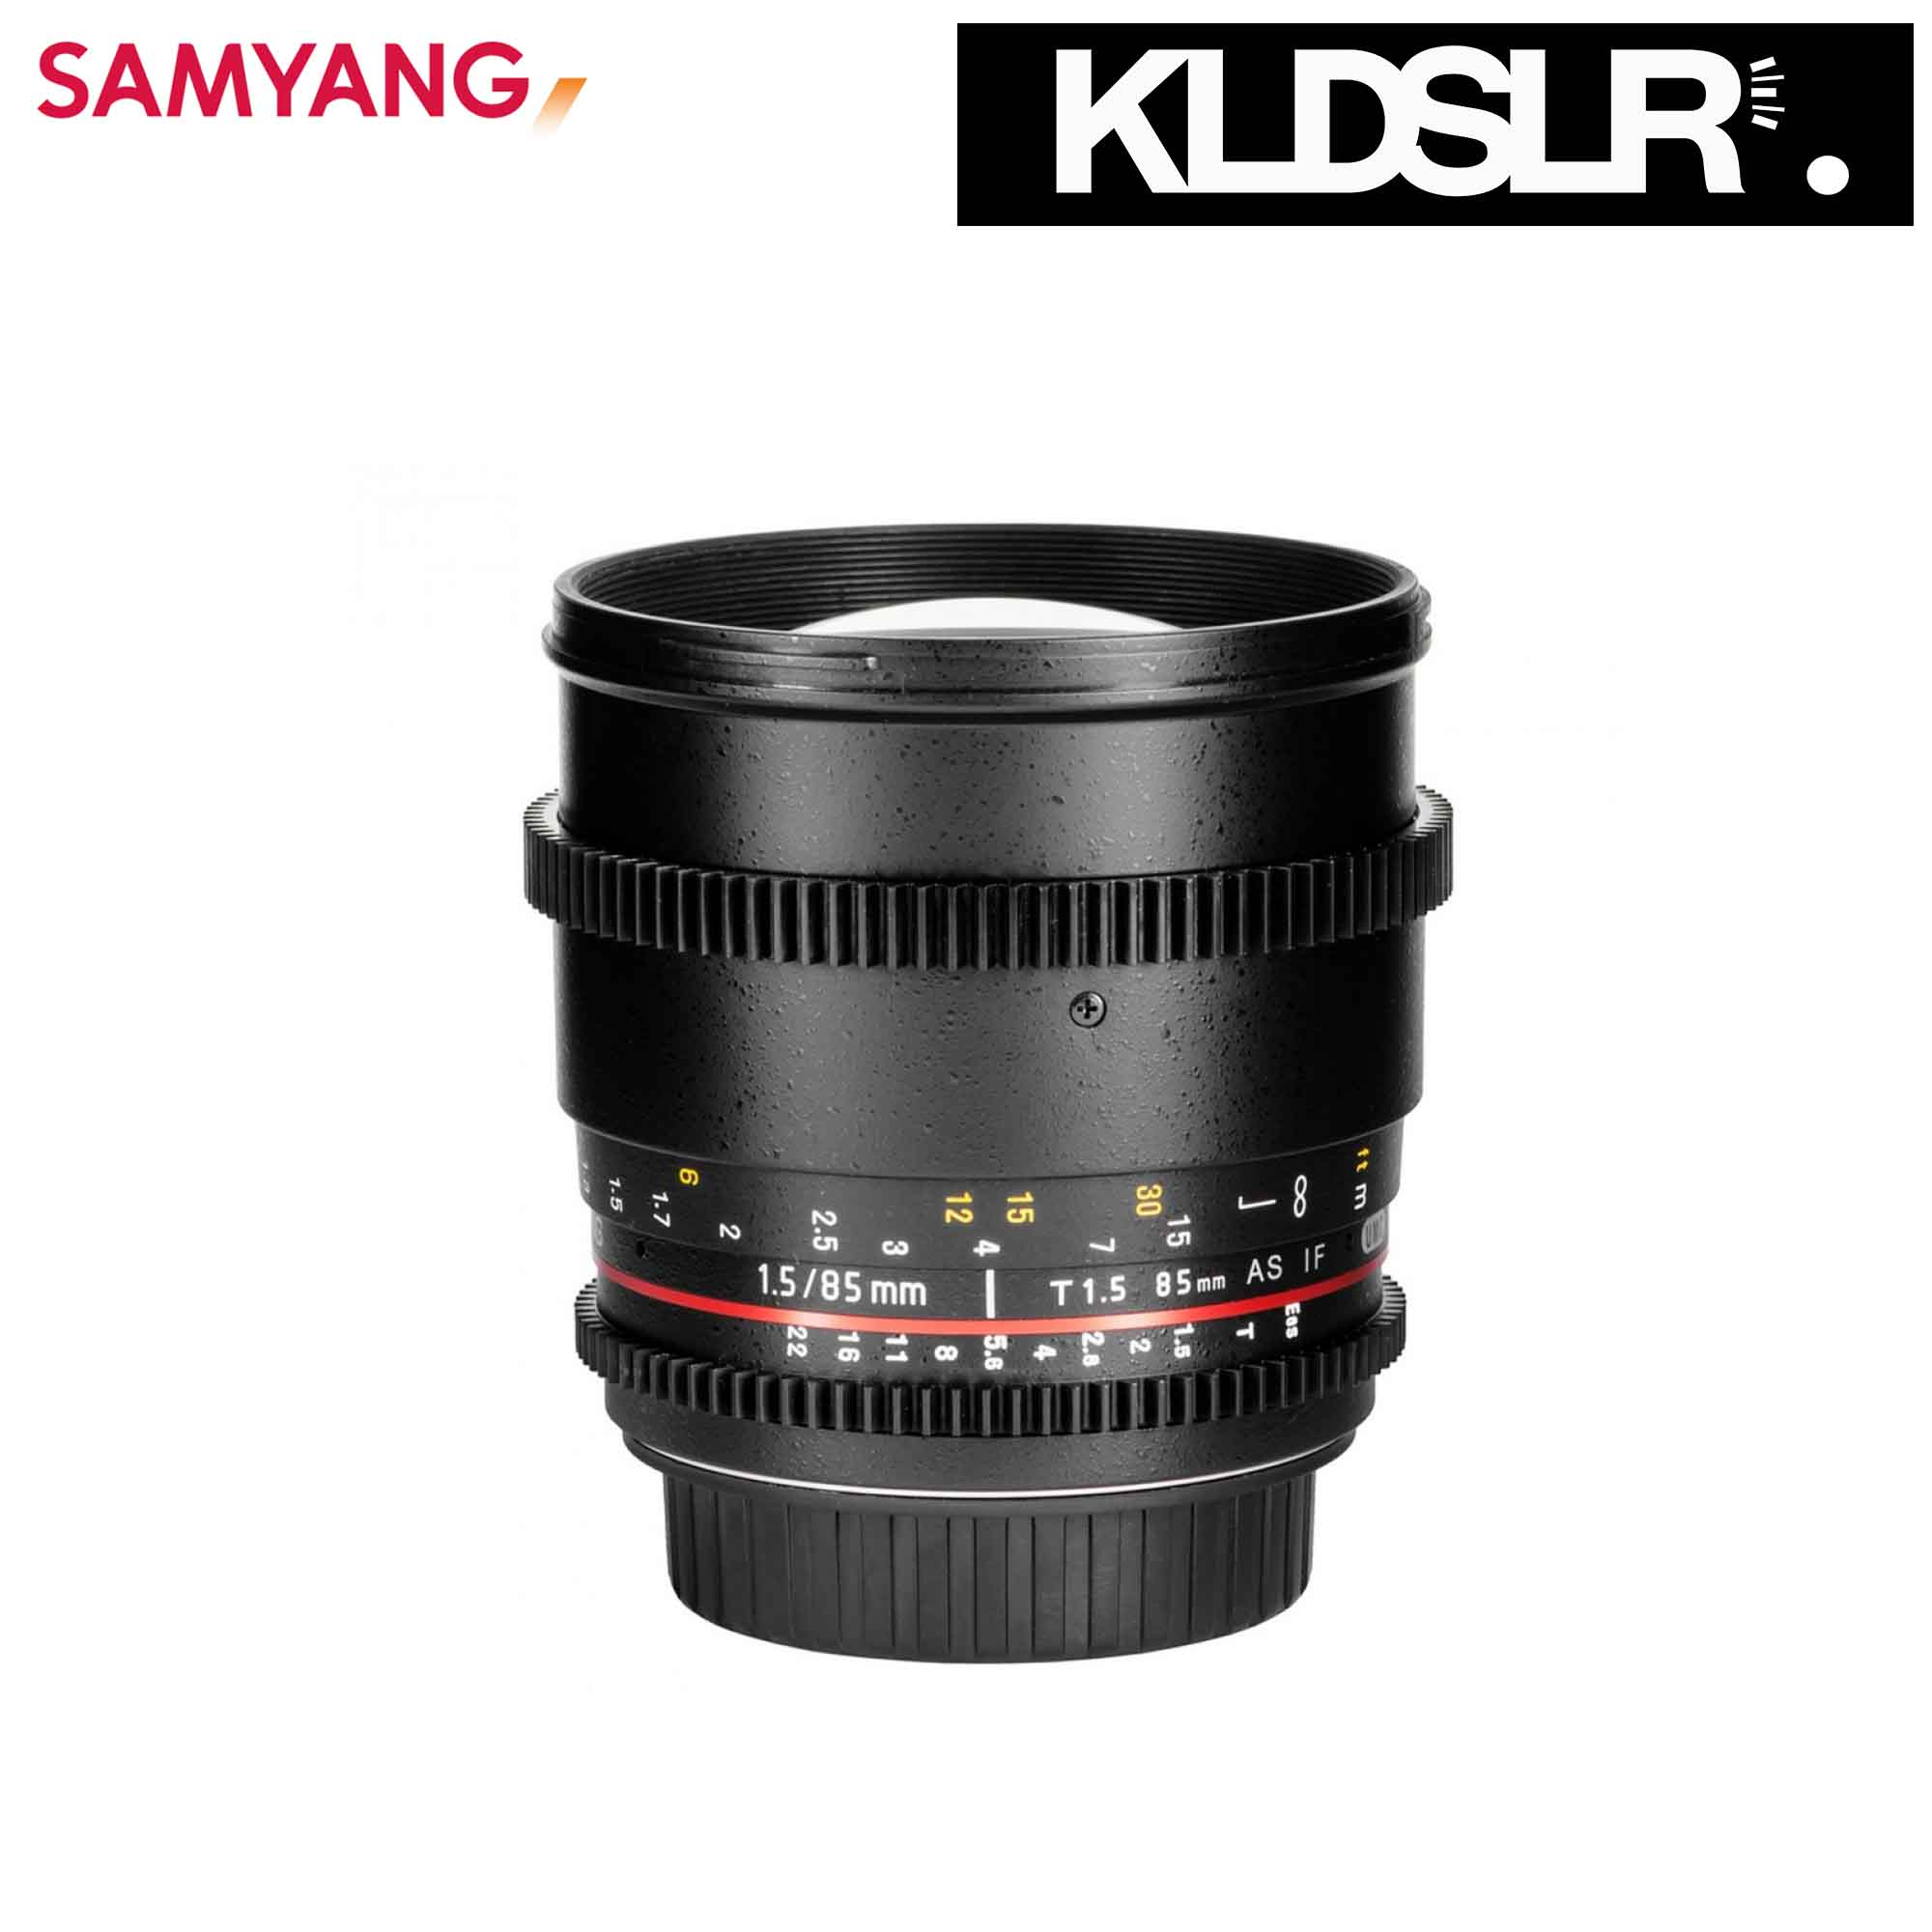 06 Samyang 85mm T1.5 AS IF UMC VDSLR II  Lens for Sony DSLR